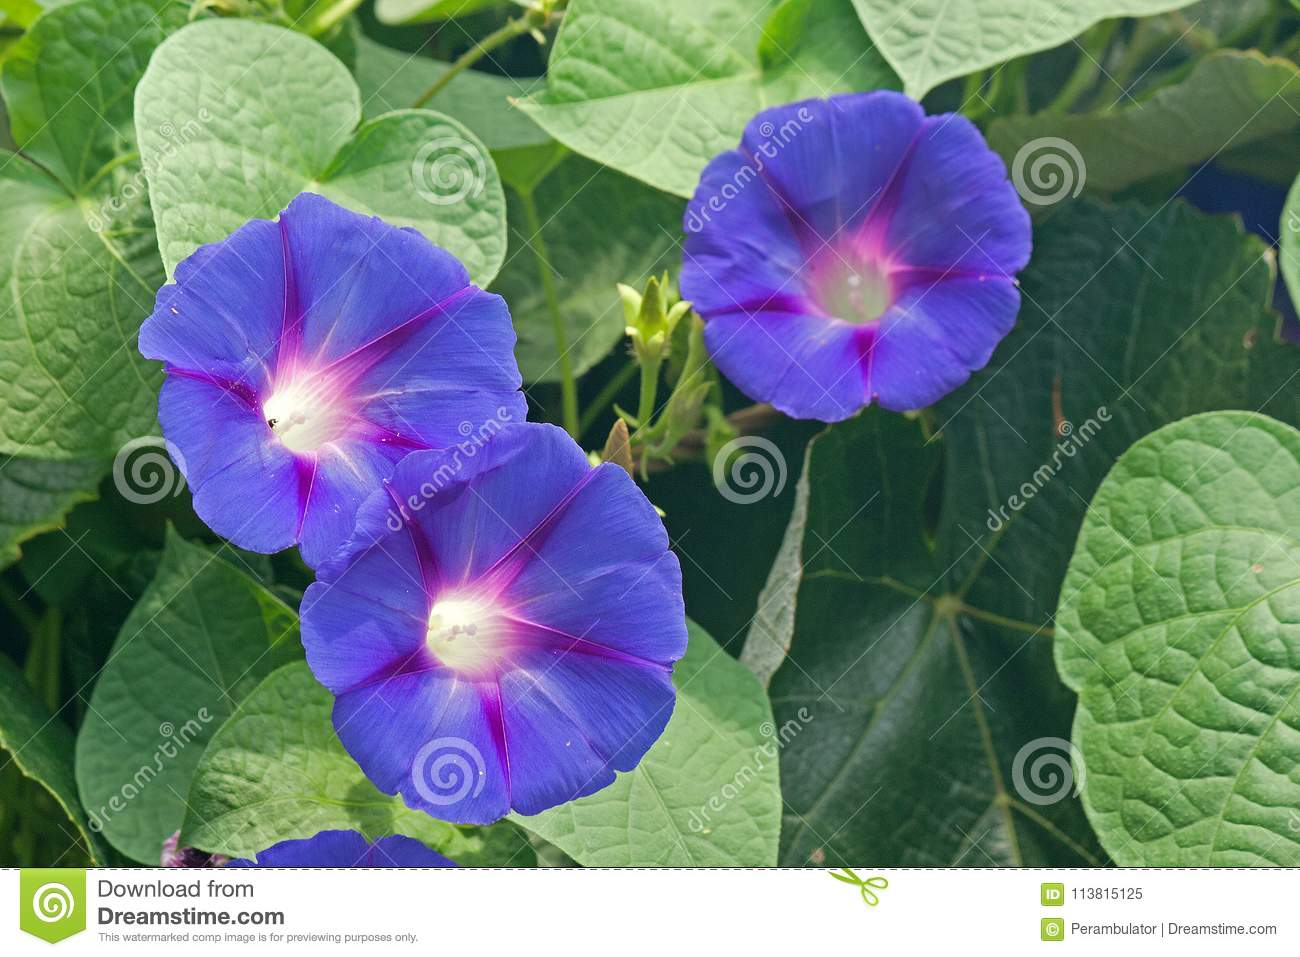 Blue Morning Glory Flowers Entwined With Grape Vine Stock Image